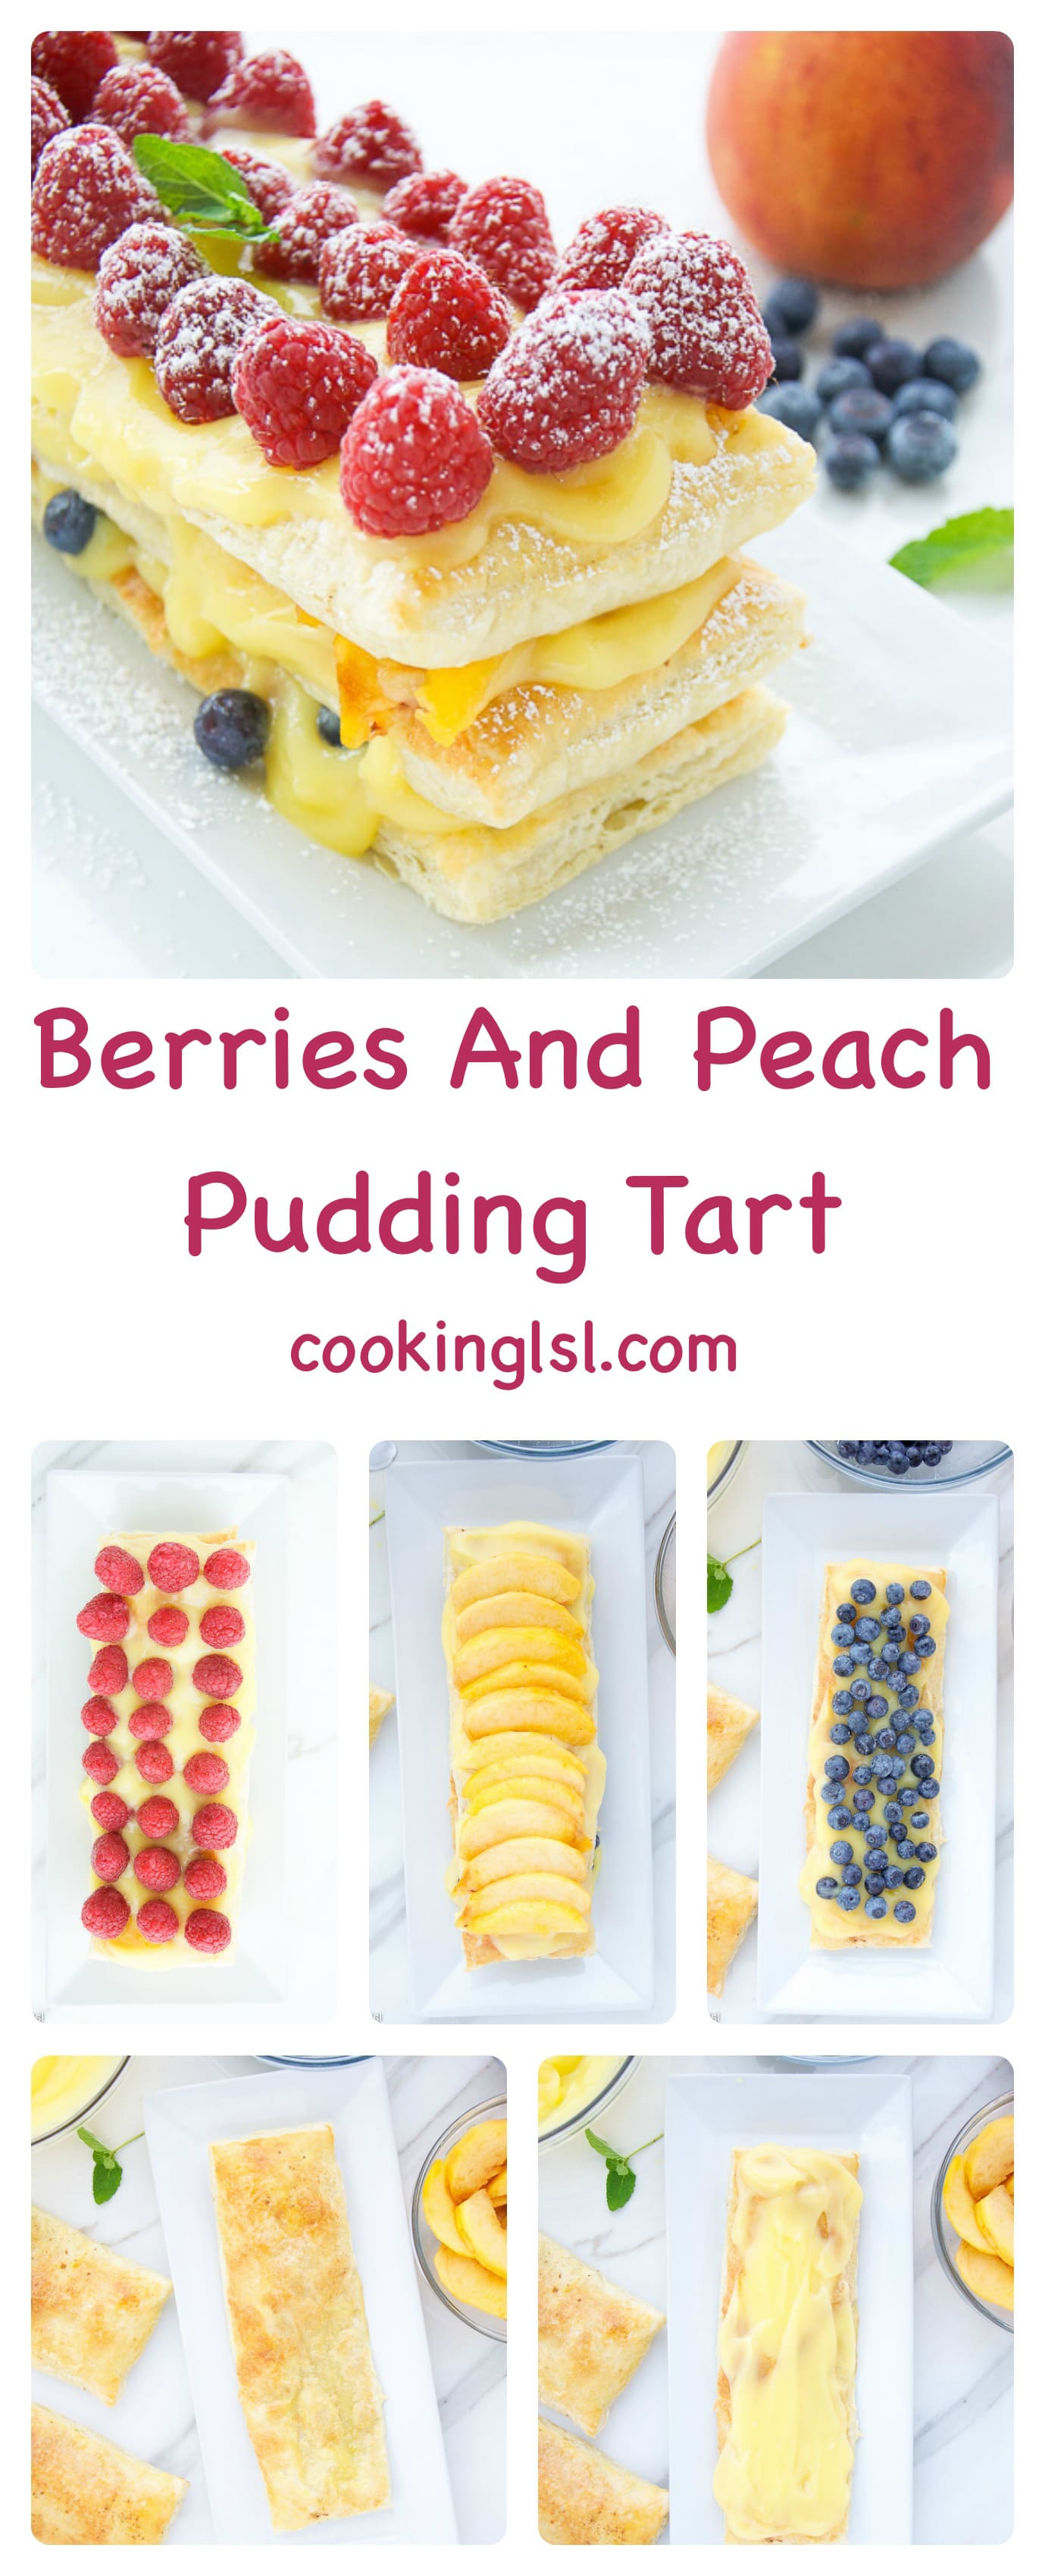 Berries And Peach Pudding Tart - fresh blueberries, raspberries and peaches stacked in three layers with delicious vanilla pudding and crispy, freshly baked puff pastry, topped with powdered sugar.